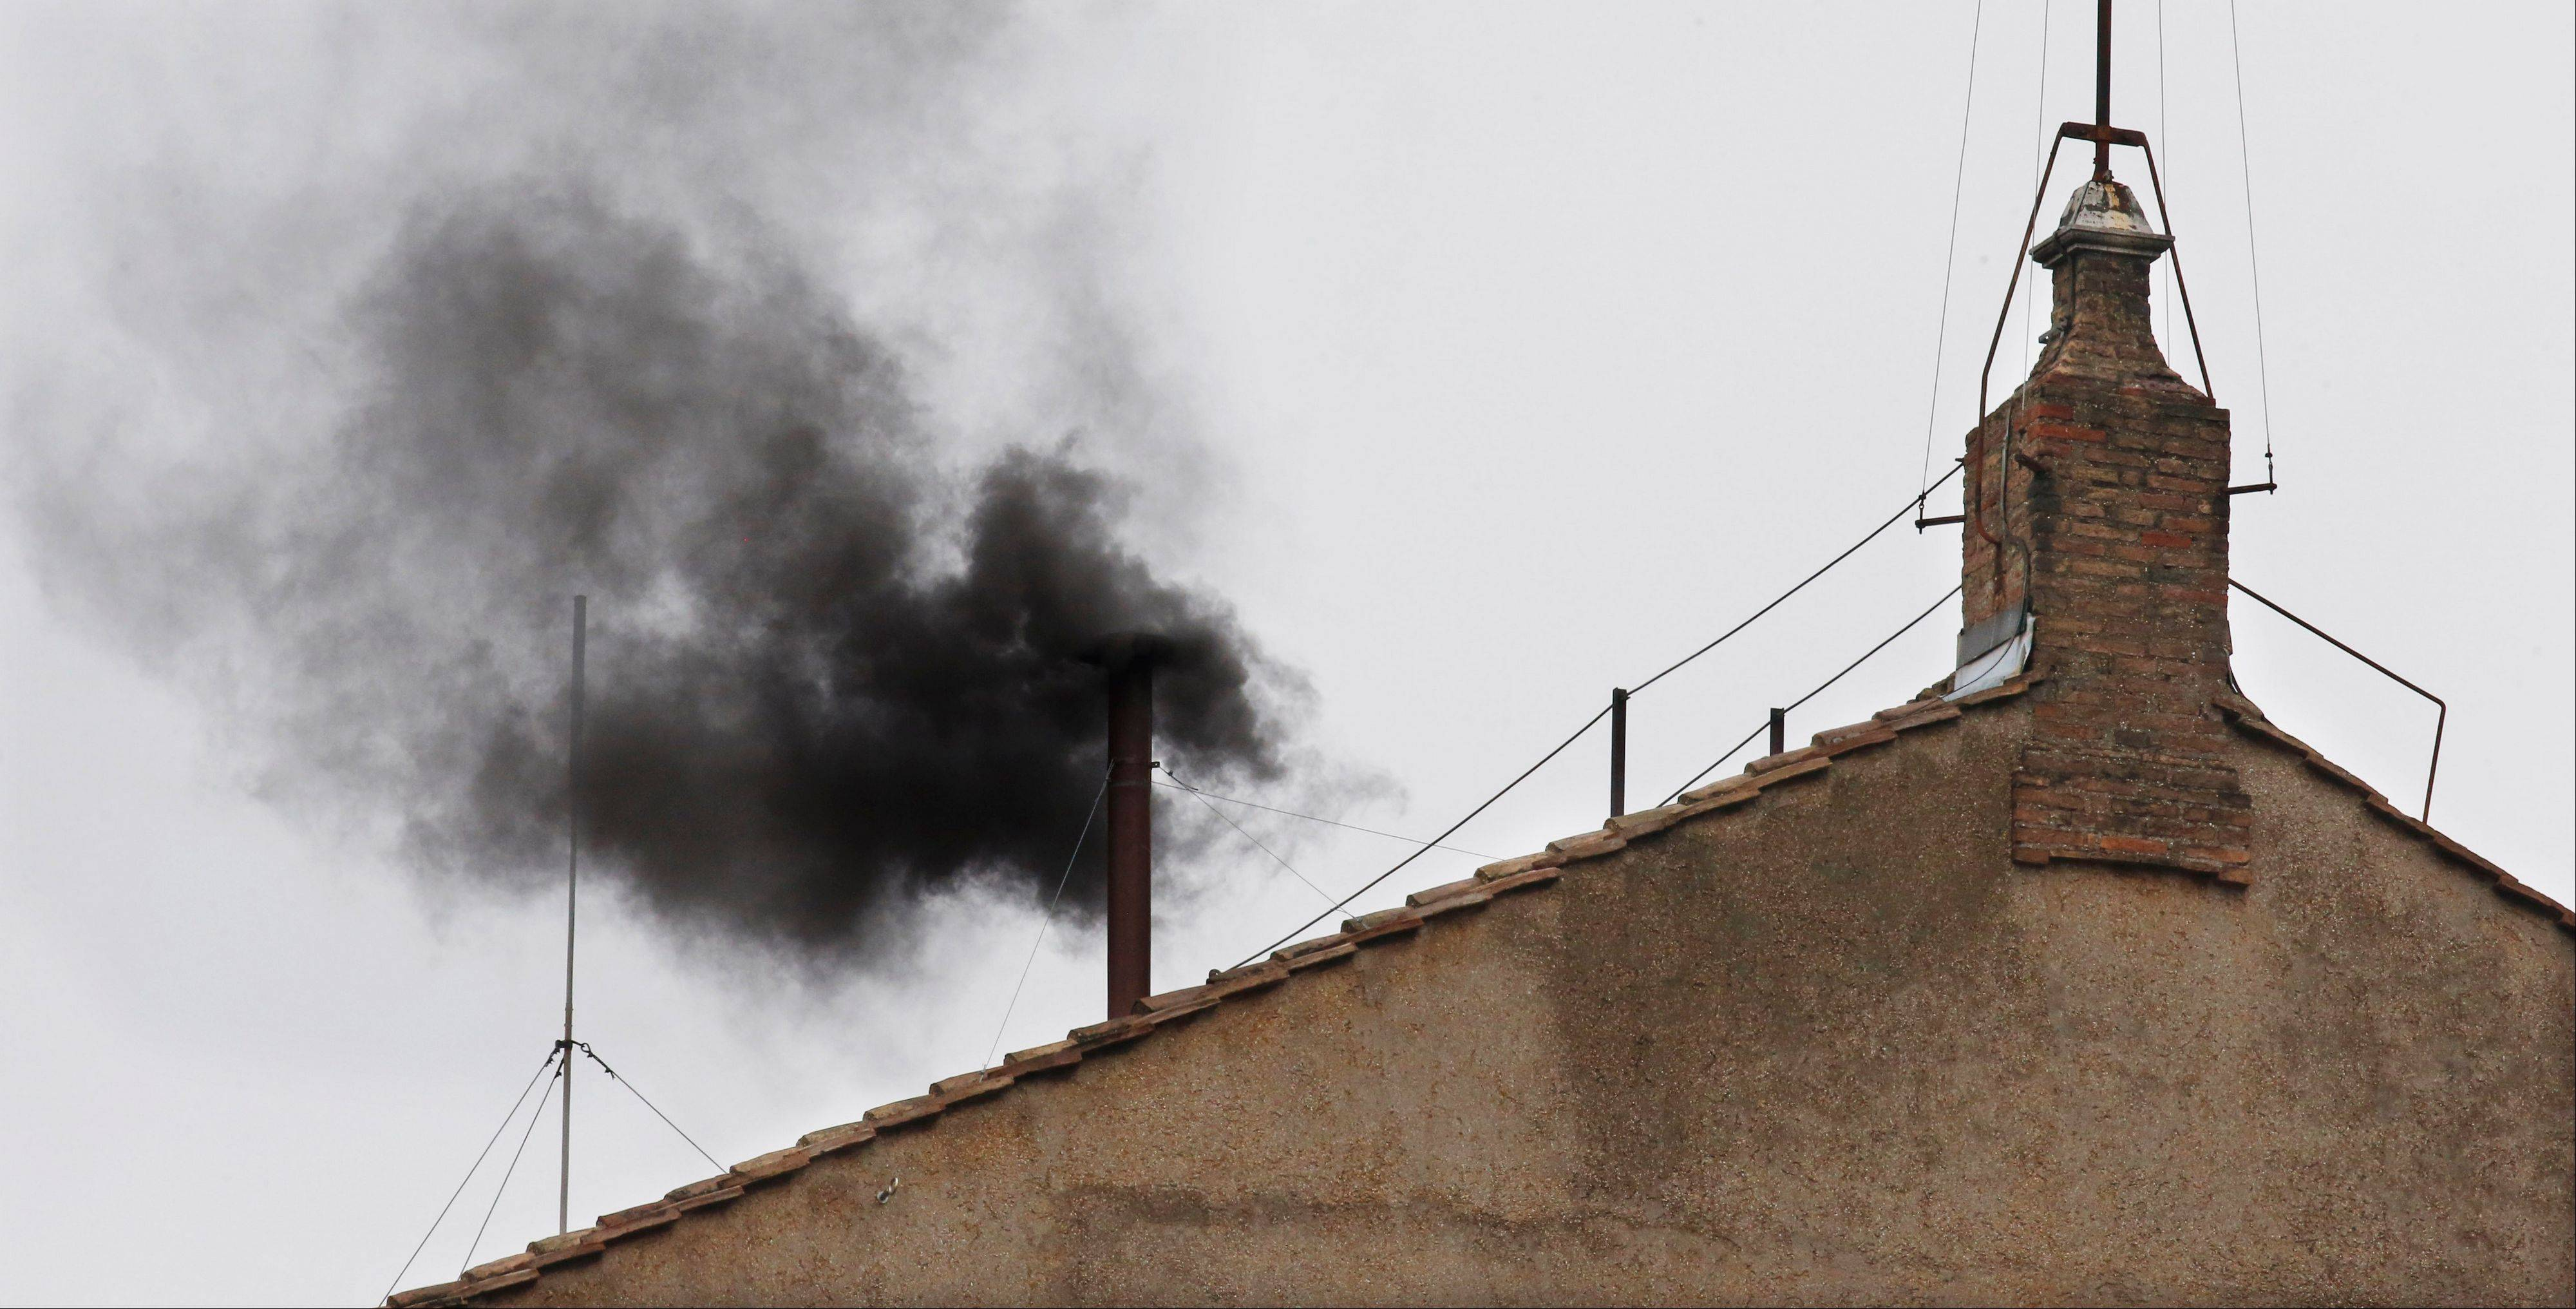 Black smoke emerges from the chimney on the Sistine Chapel as cardinals voted on the second day of the conclave to elect a pope. Black smoke indicating that no pope was elected was made by adding cartridges containing potassium perchlorate, anthracene (a component of coal tar), and sulfur to the burned ballots.